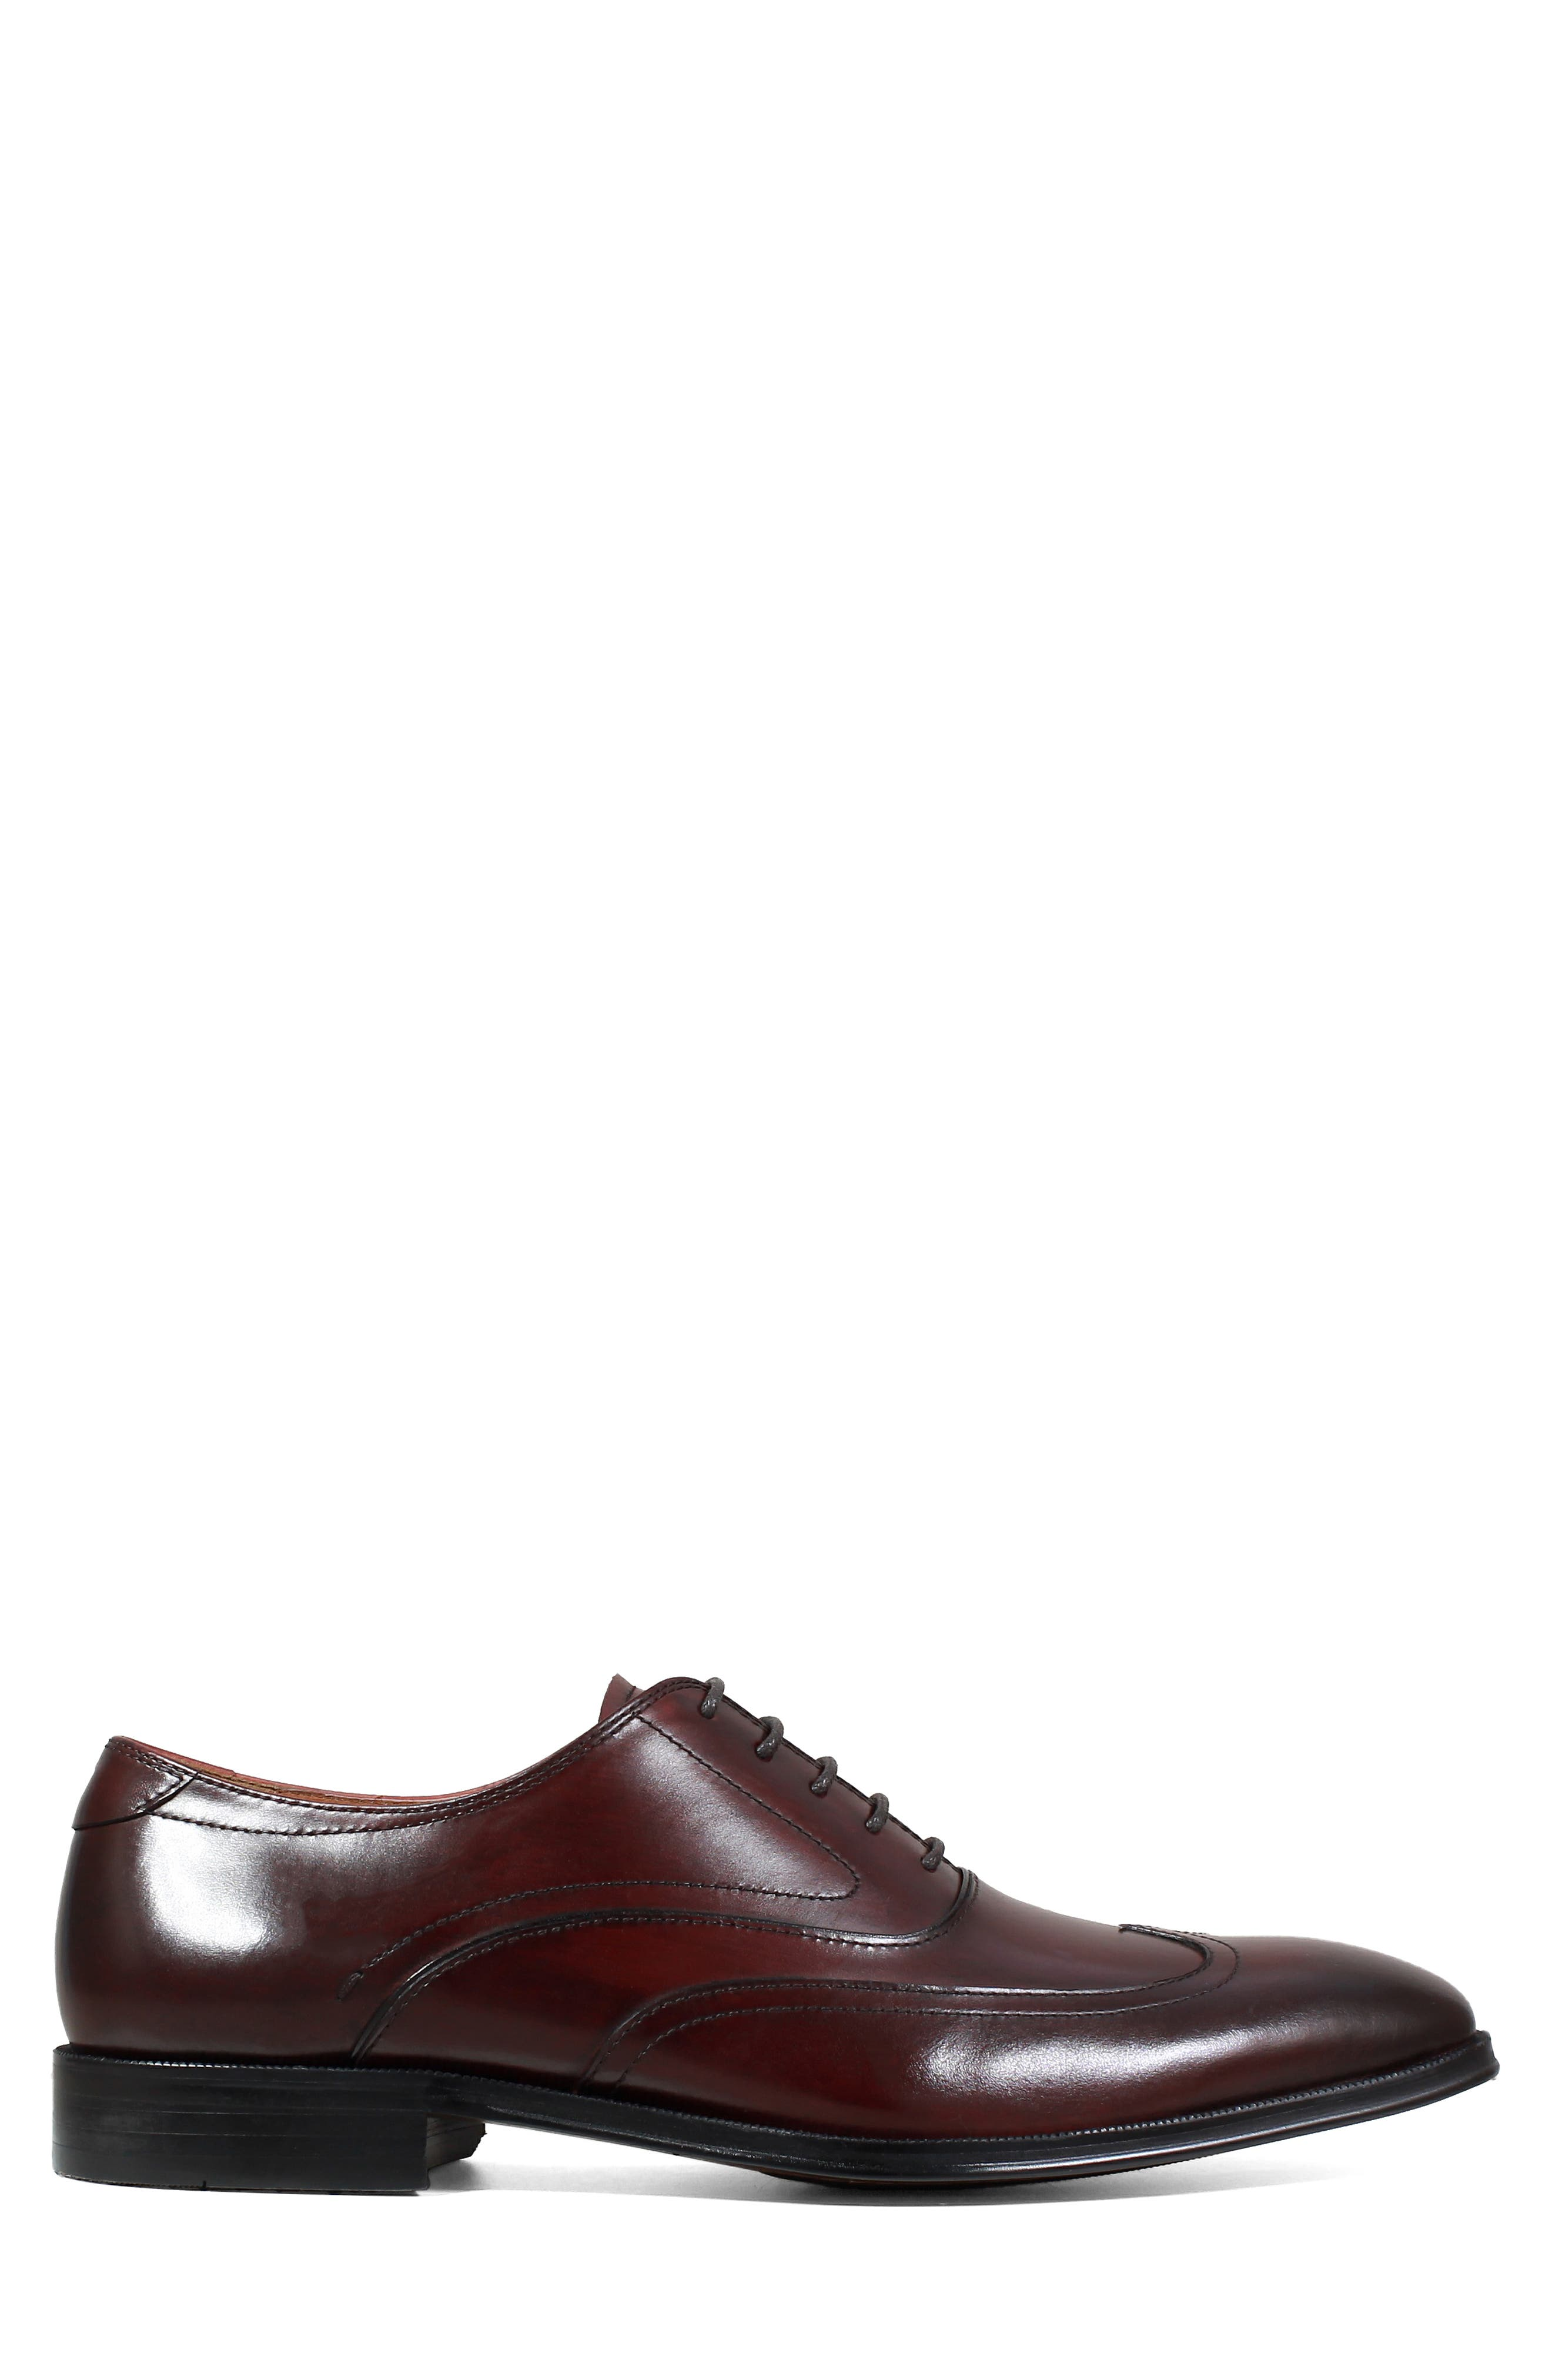 Belfast Wingtip,                             Alternate thumbnail 3, color,                             BURGUNDY LEATHER